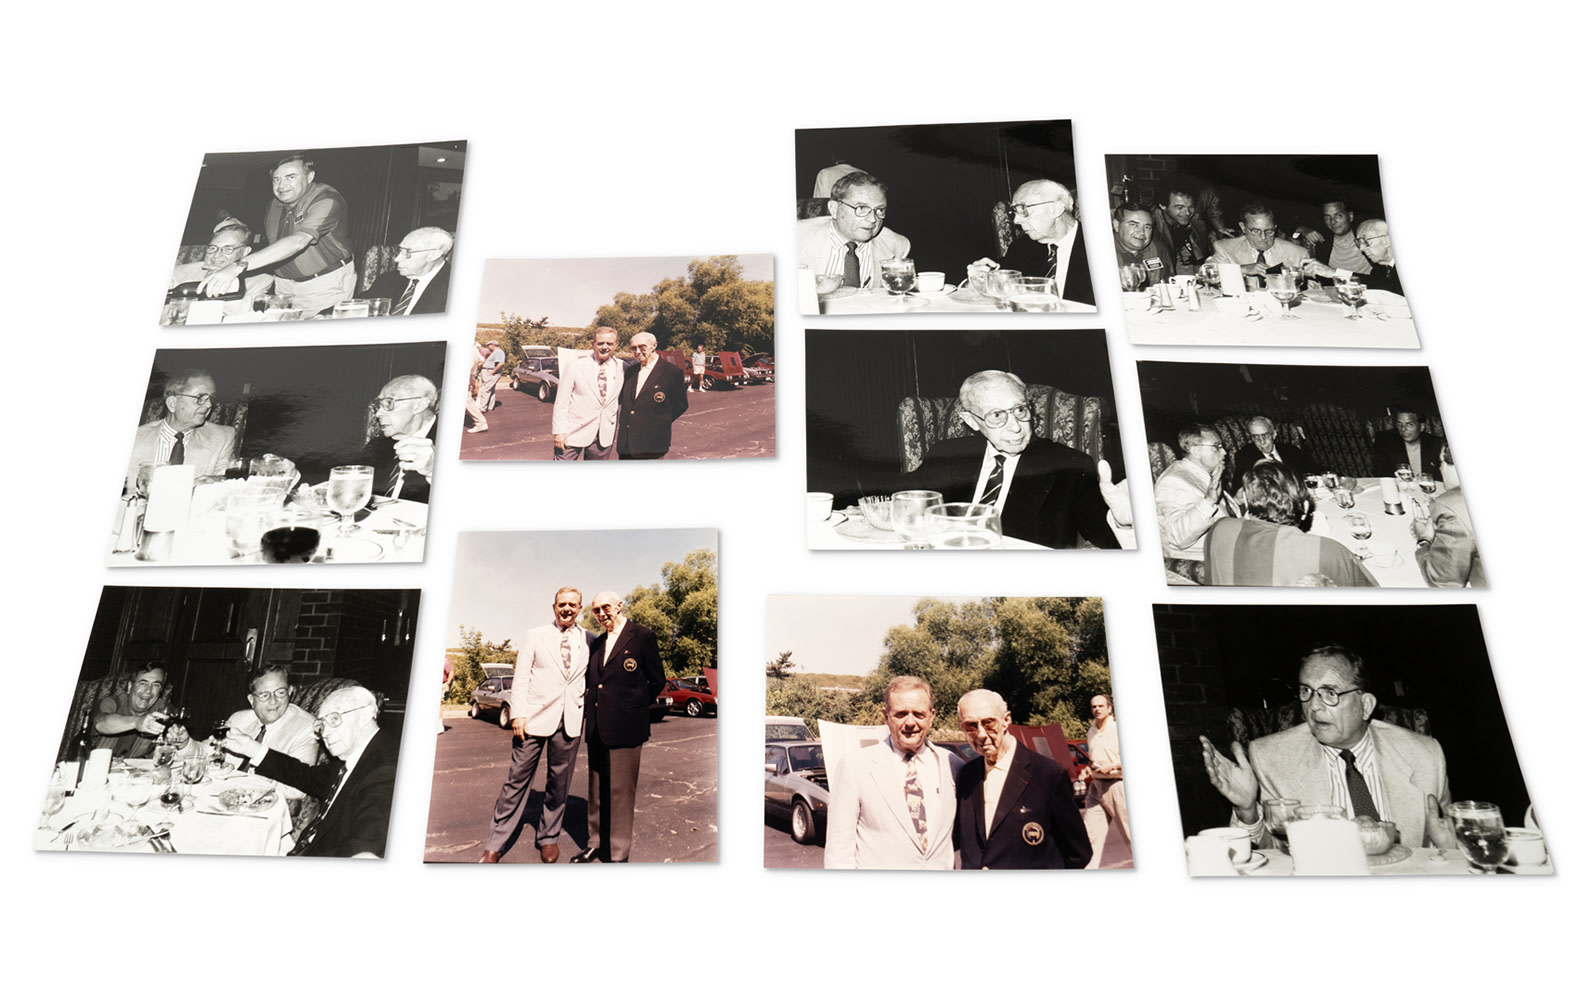 Photographs of Phil Hill and René Dreyfus